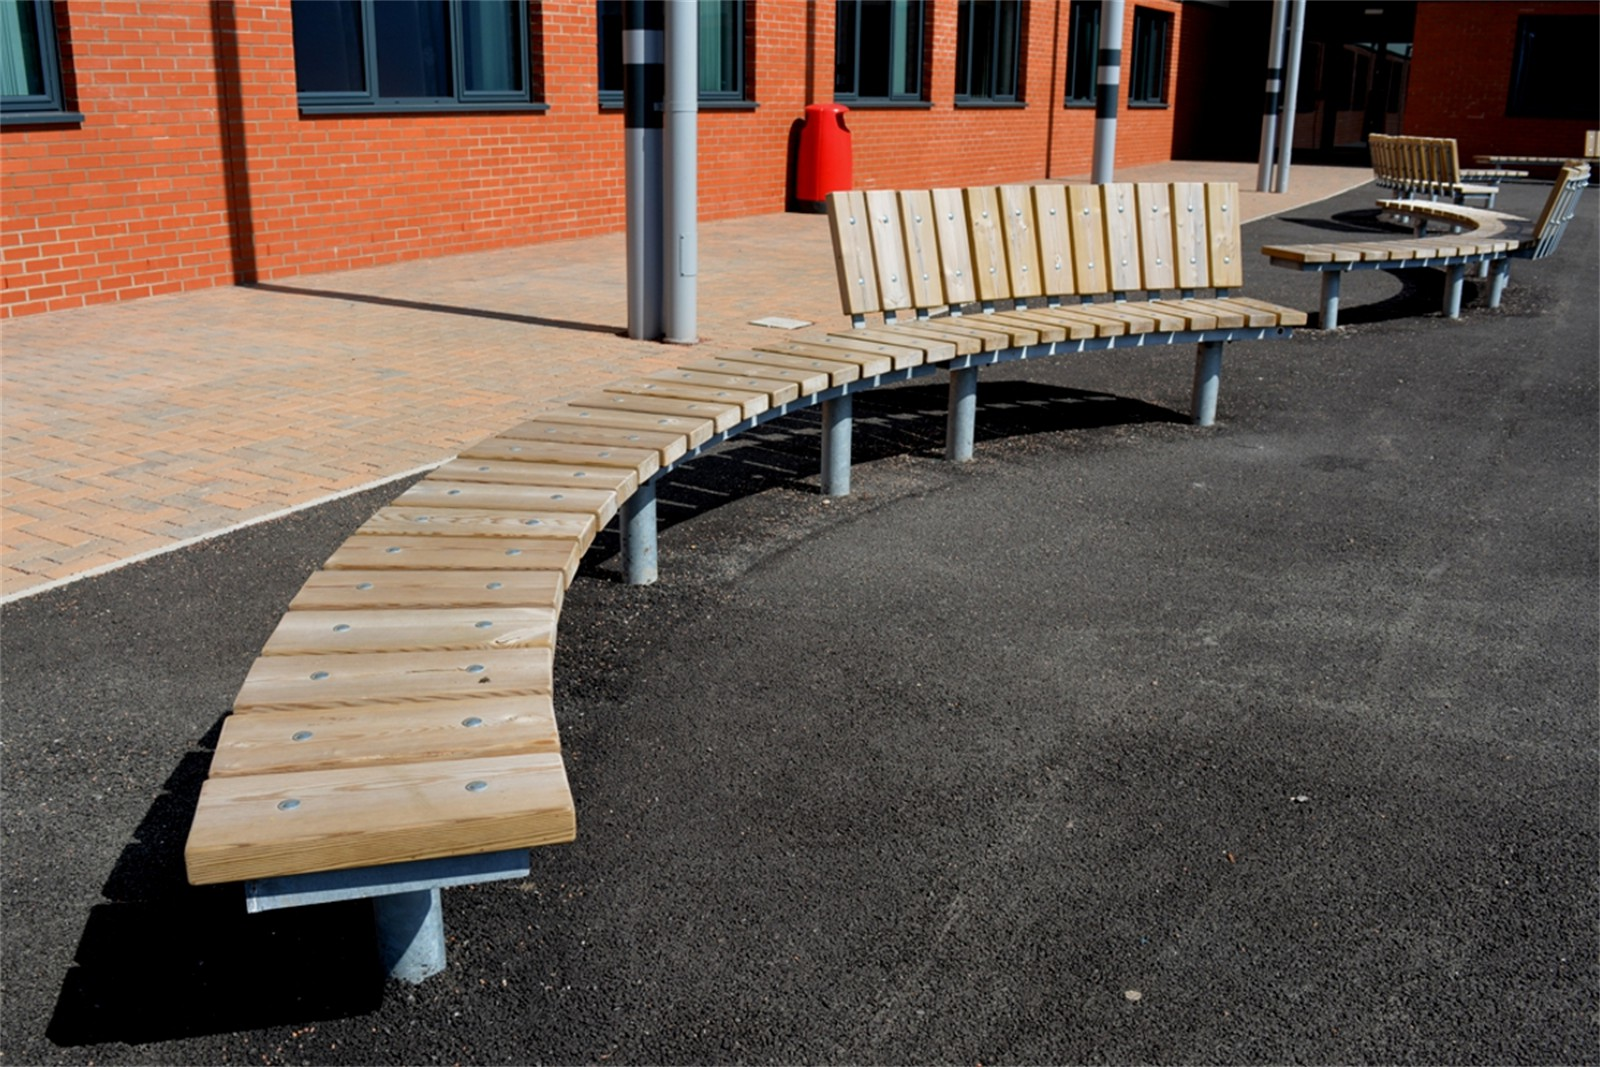 76ssp42 - Spalding long bench with short backrest section